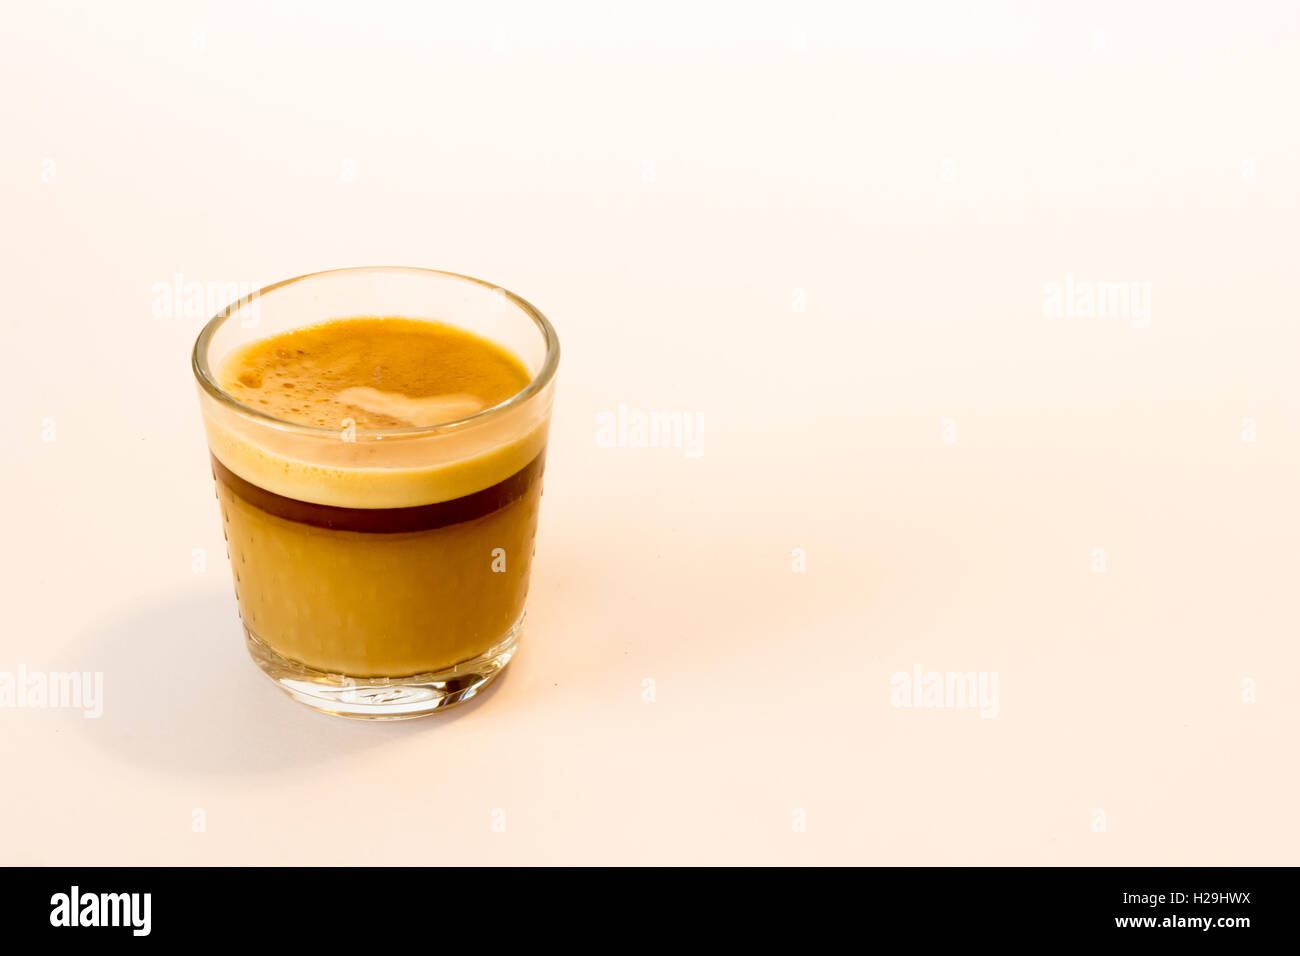 Hot Espresso in a glass cup - Stock Image